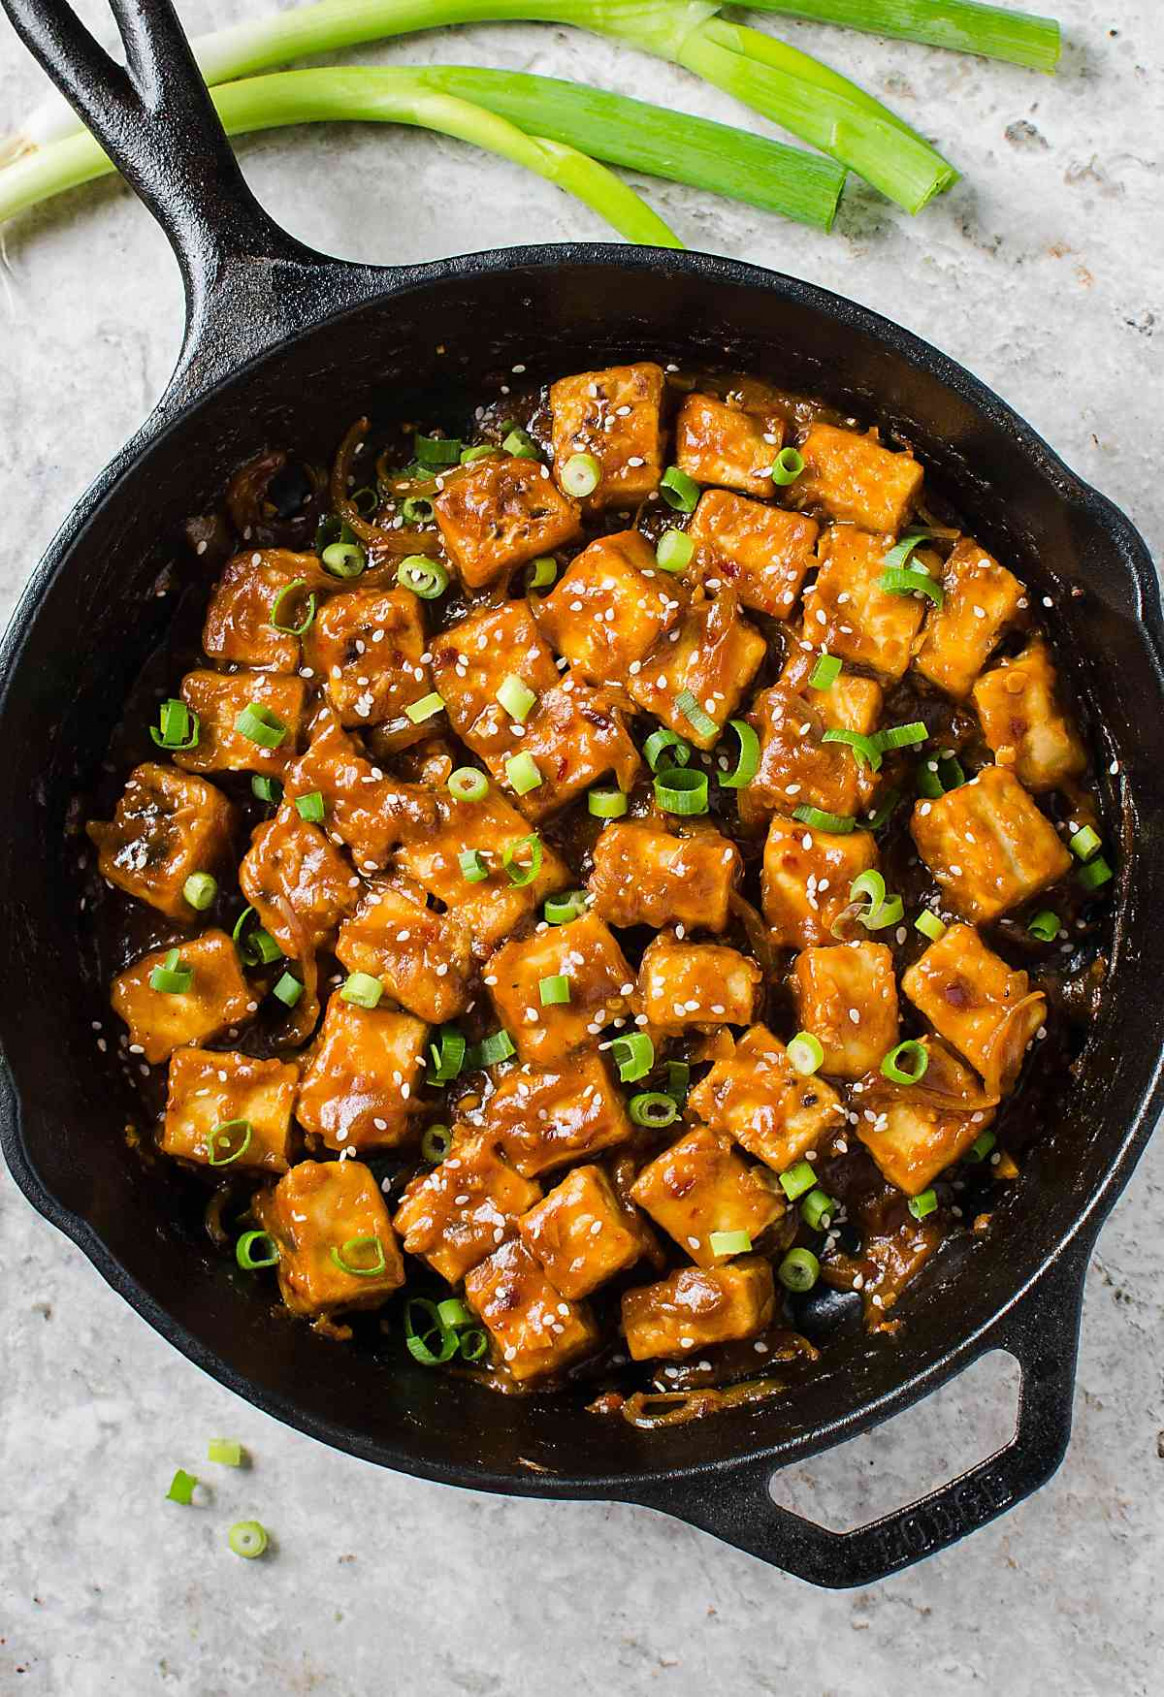 13 min Healthy Asian chili garlic tofu stir-fry (One Pan ..